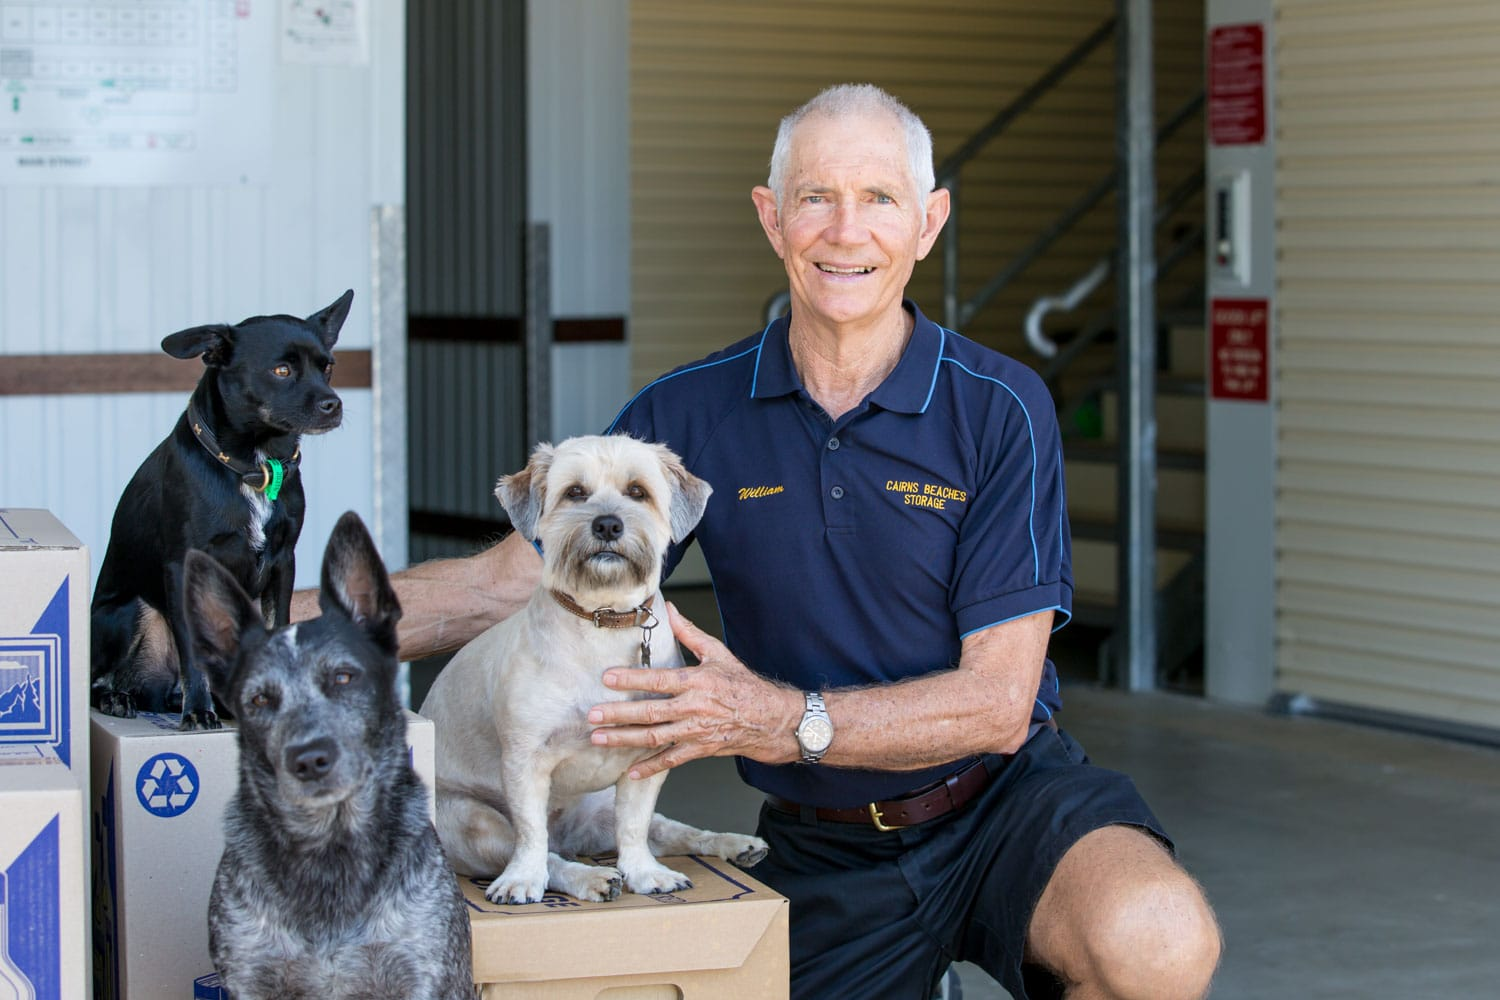 Dogs sitting on packing boxes with owner at cairns beaches storage in Cairns